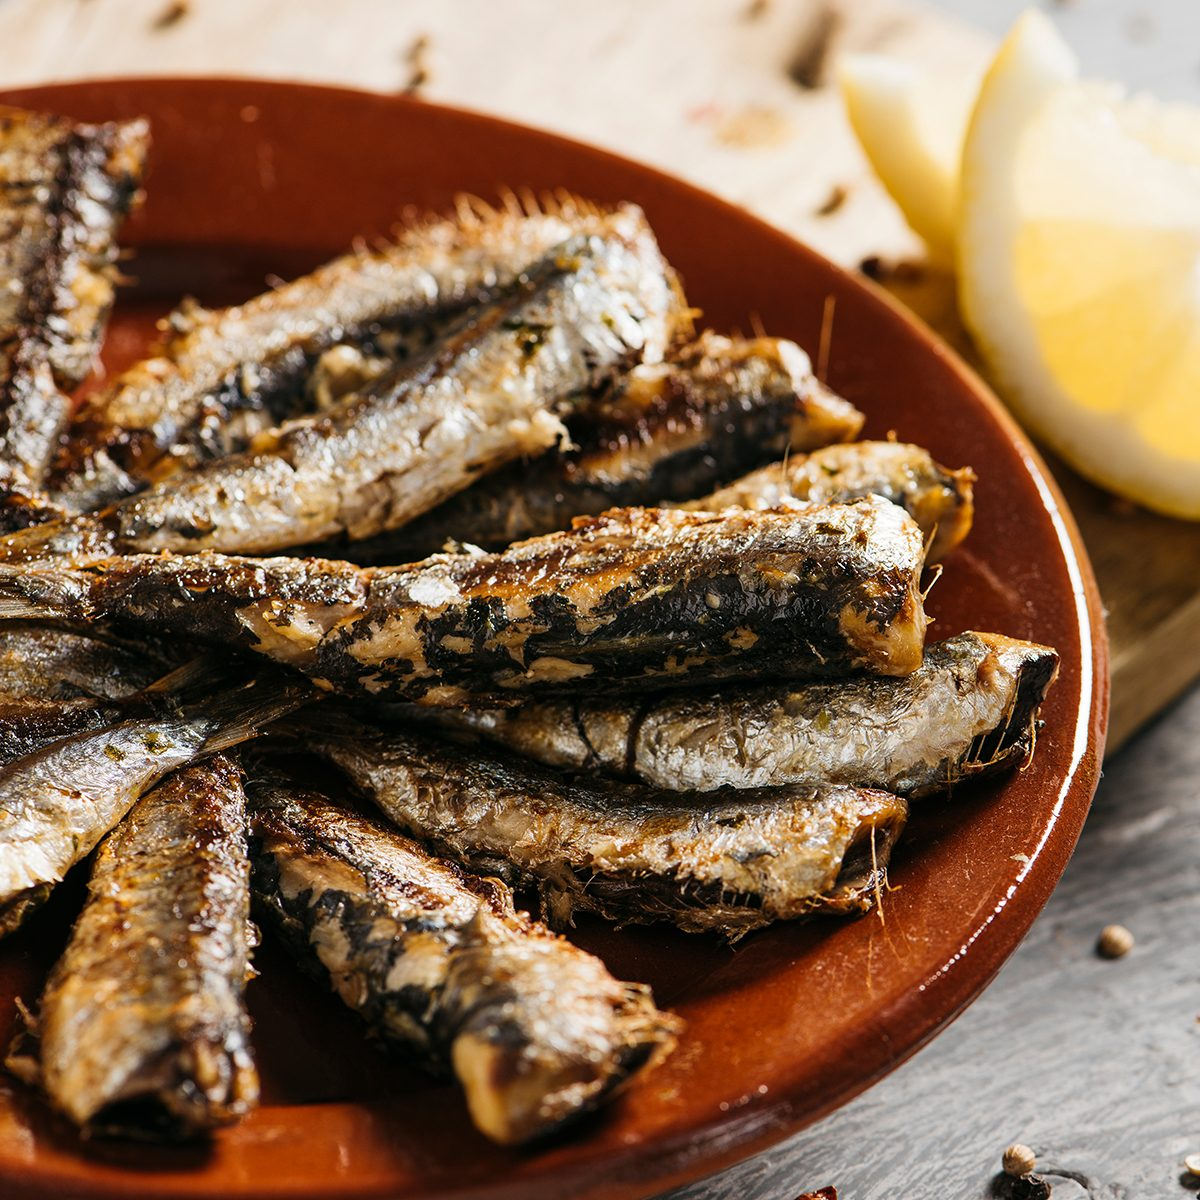 closeup of some spanish grilled sardines in a brown earthenware plate